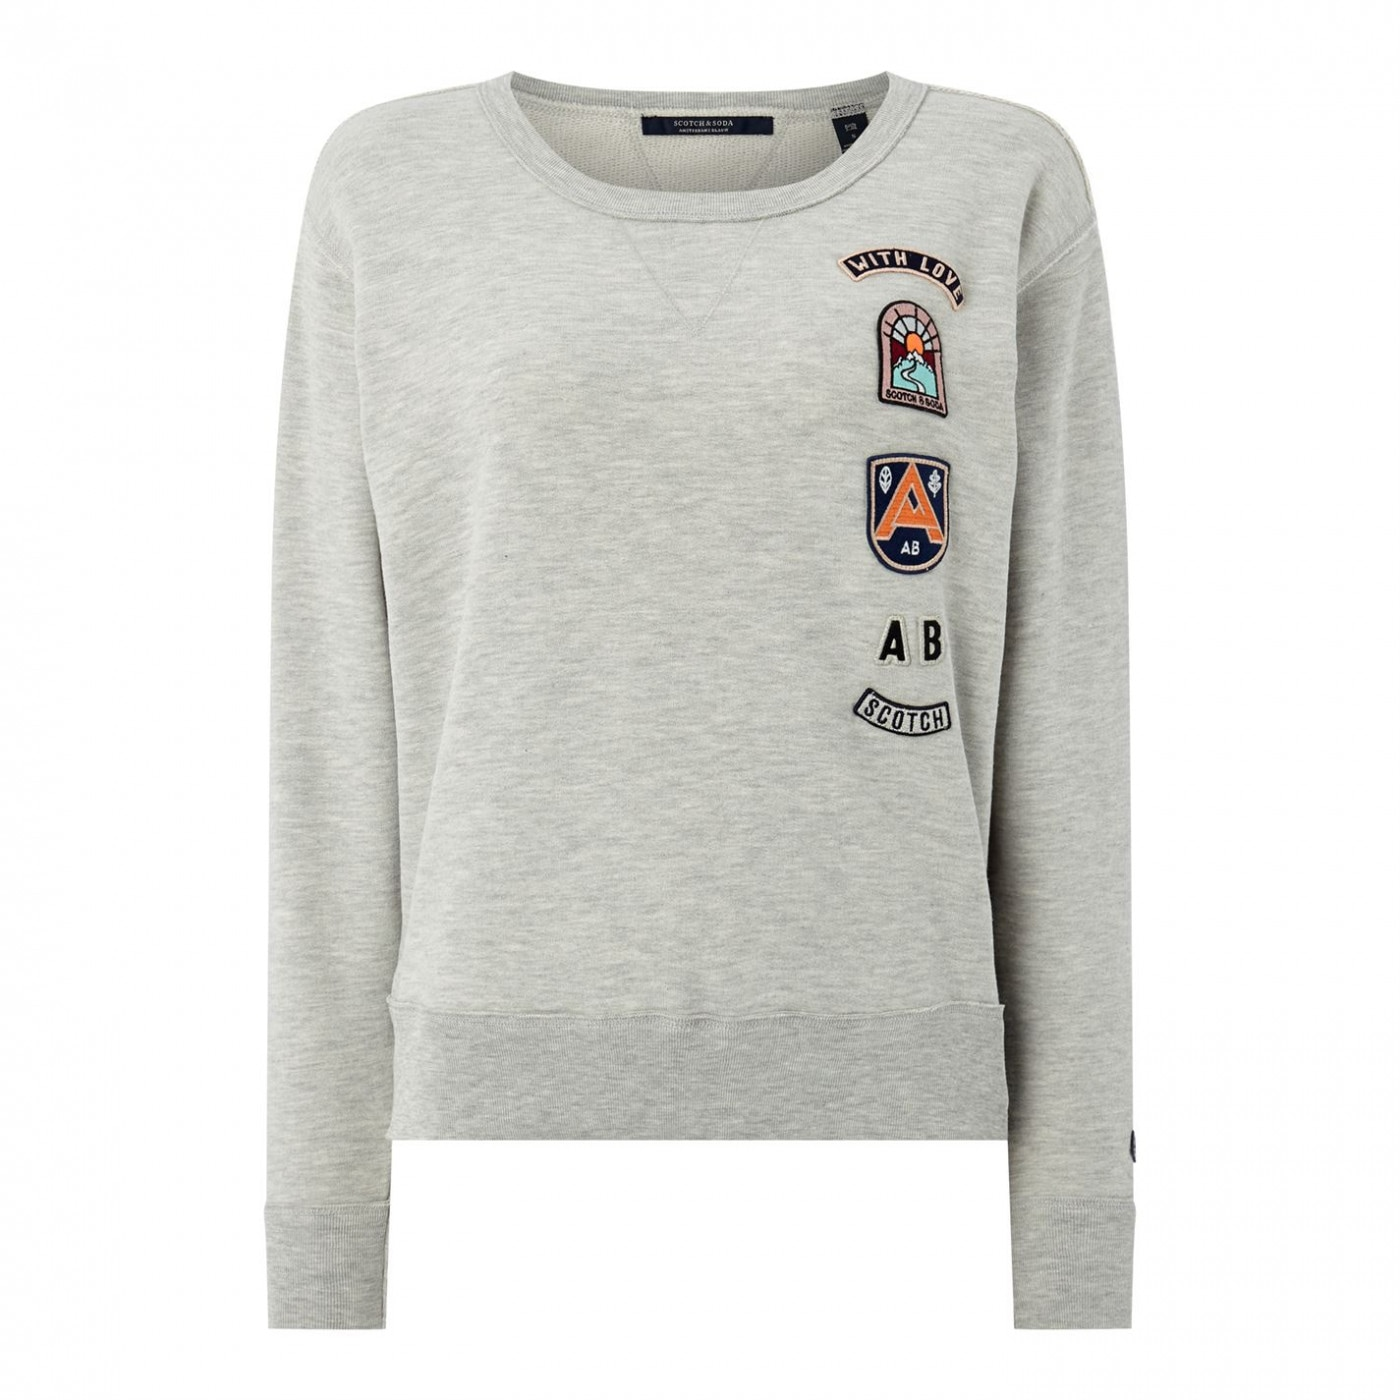 Scotch and Soda Badge Sweatshirt Ladies